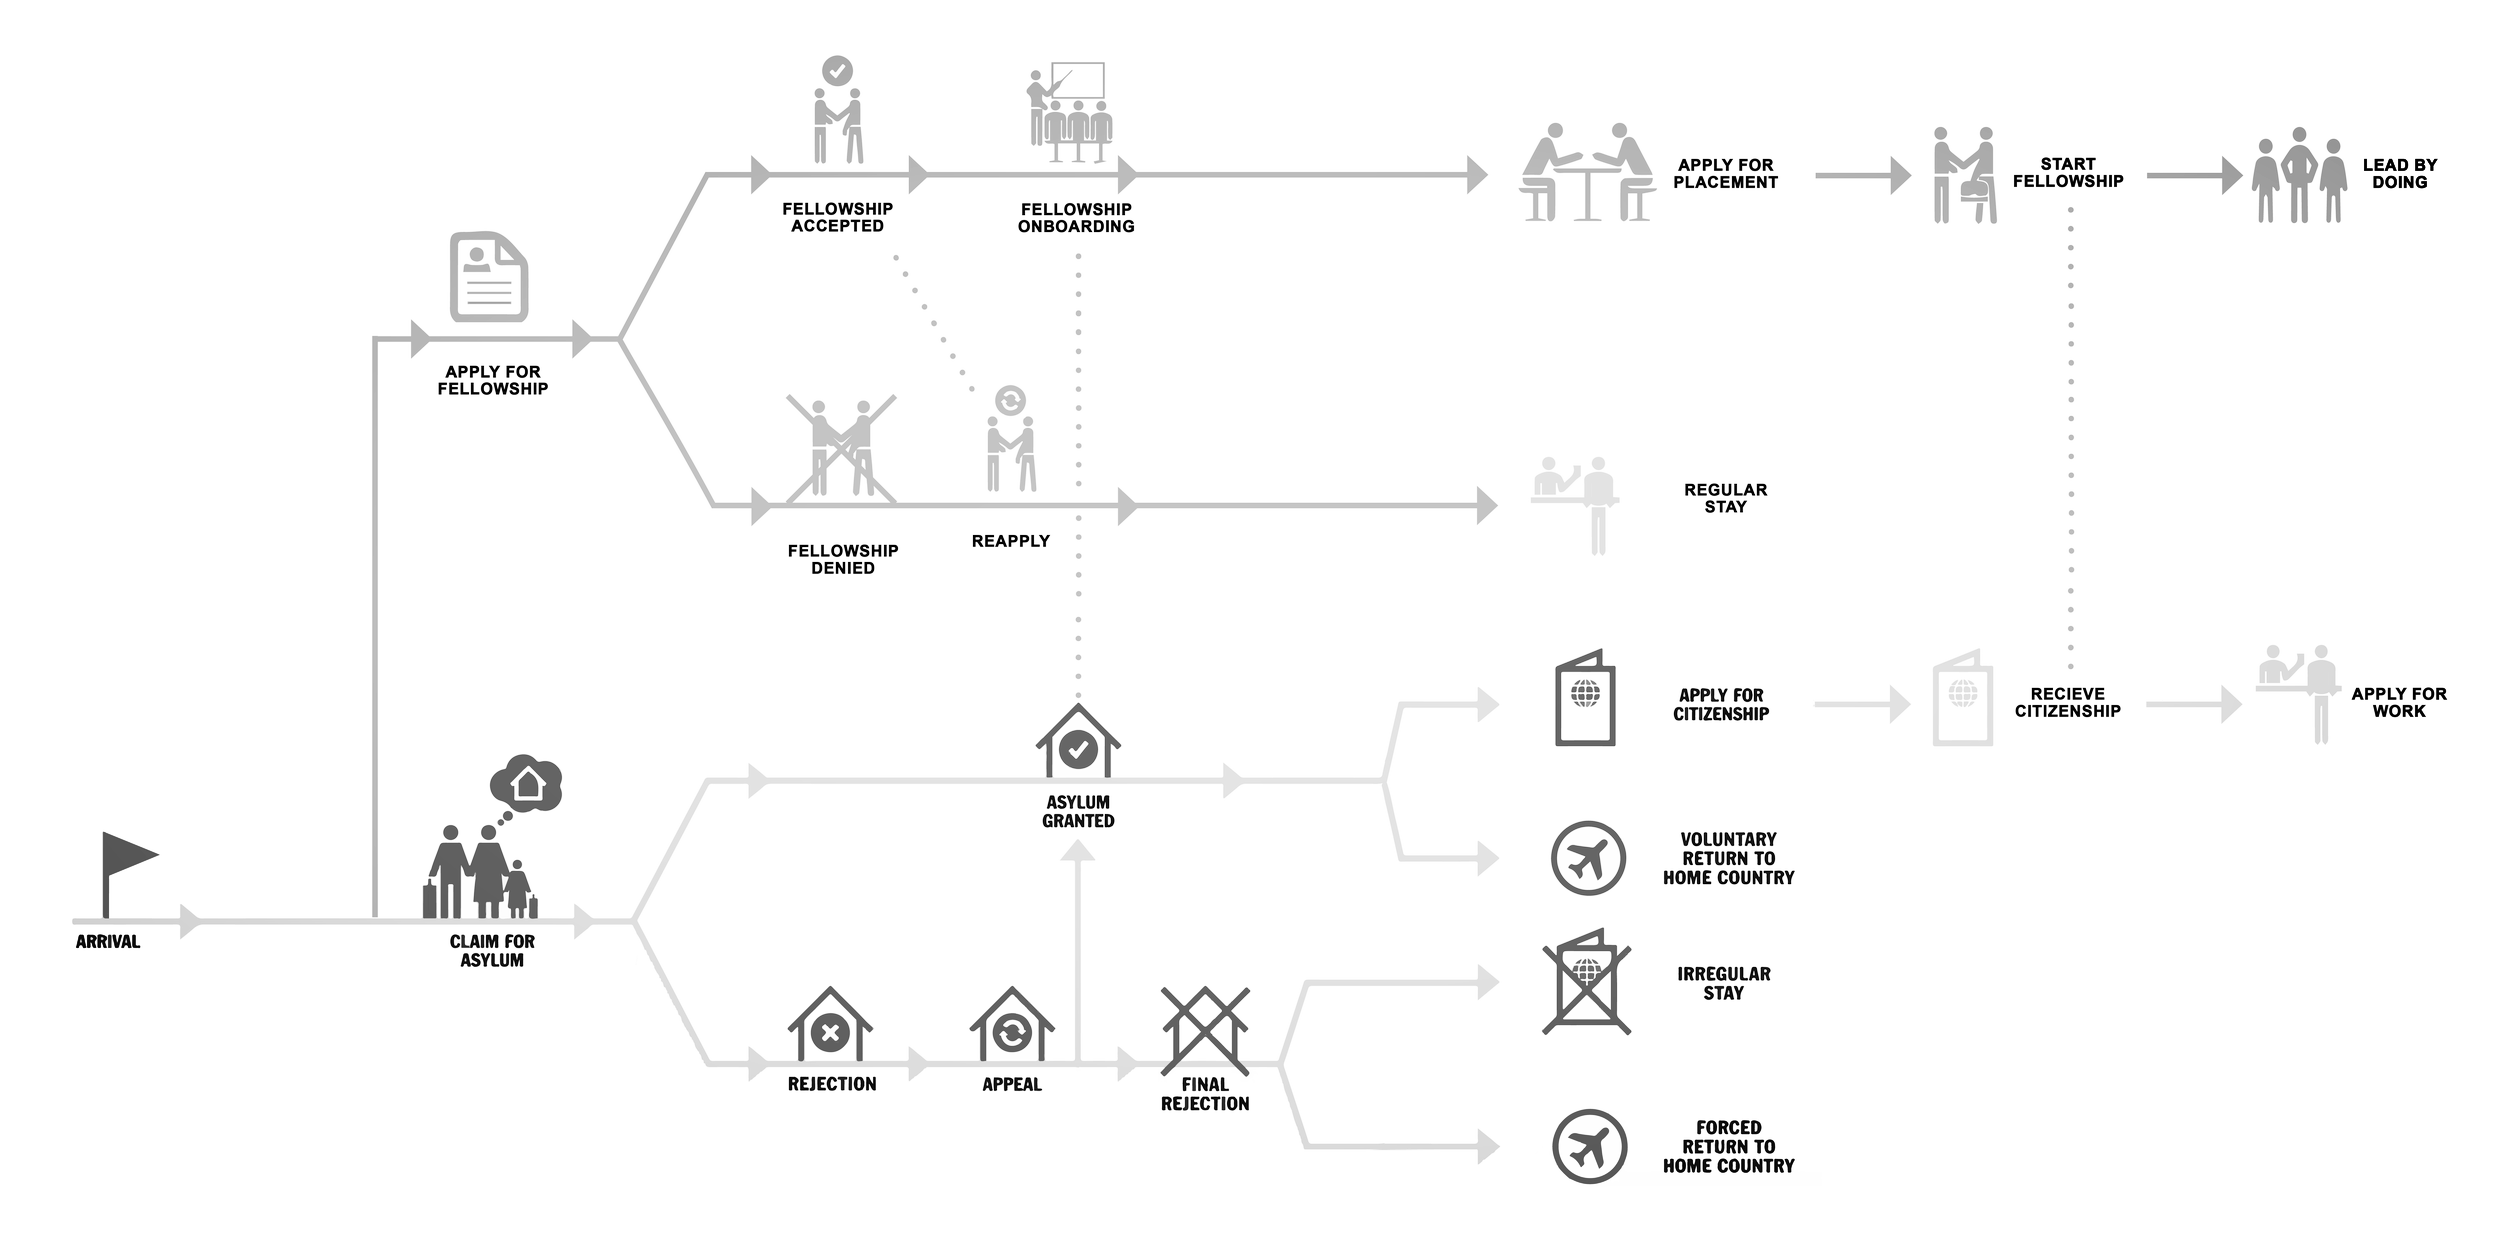 The Refugee Fellowship - Service and Community Design.More..